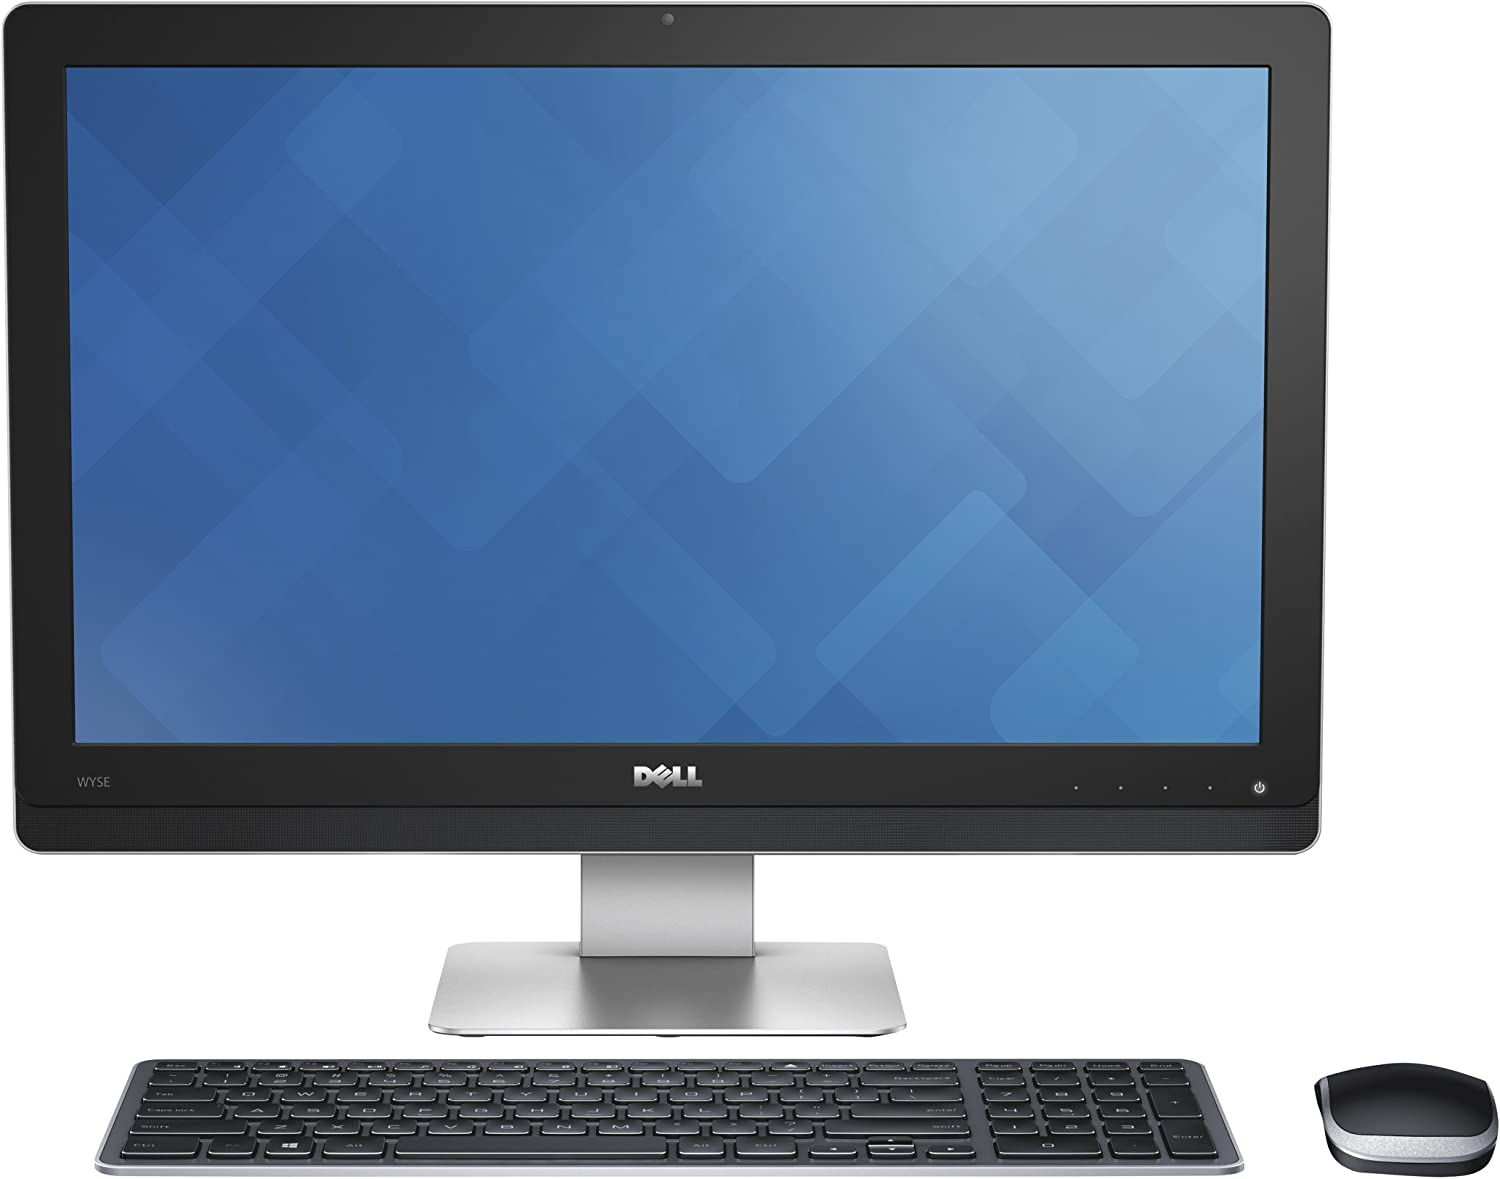 Dell 5040 All-in-One Thin Client - AMD G-Series T48E Dual-core (2 Core) 1.40